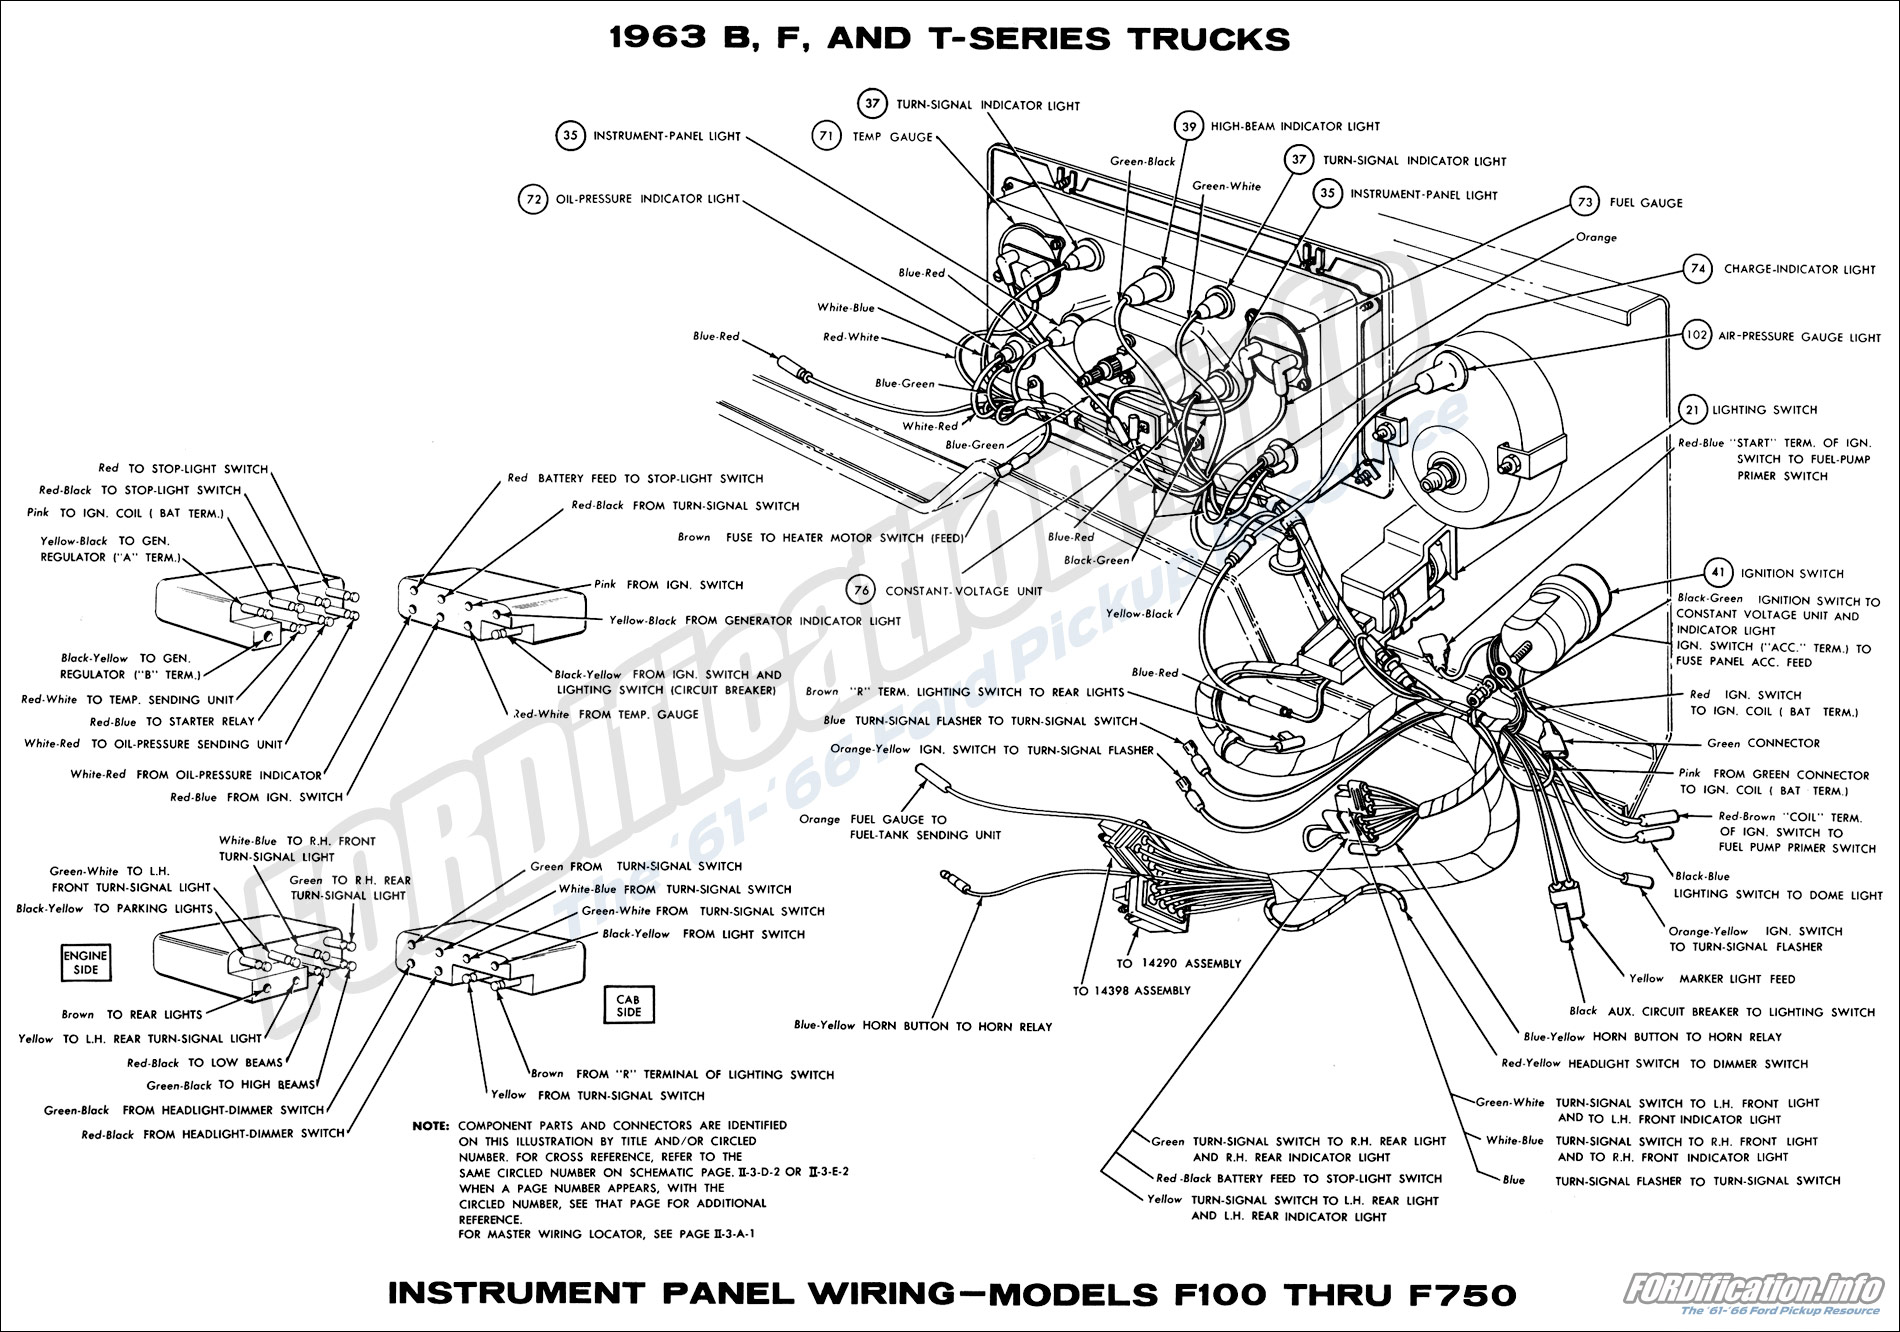 1963 f100 signal wiring diagram 31 wiring diagram images 64 Ford Truck 69 Chevy Truck